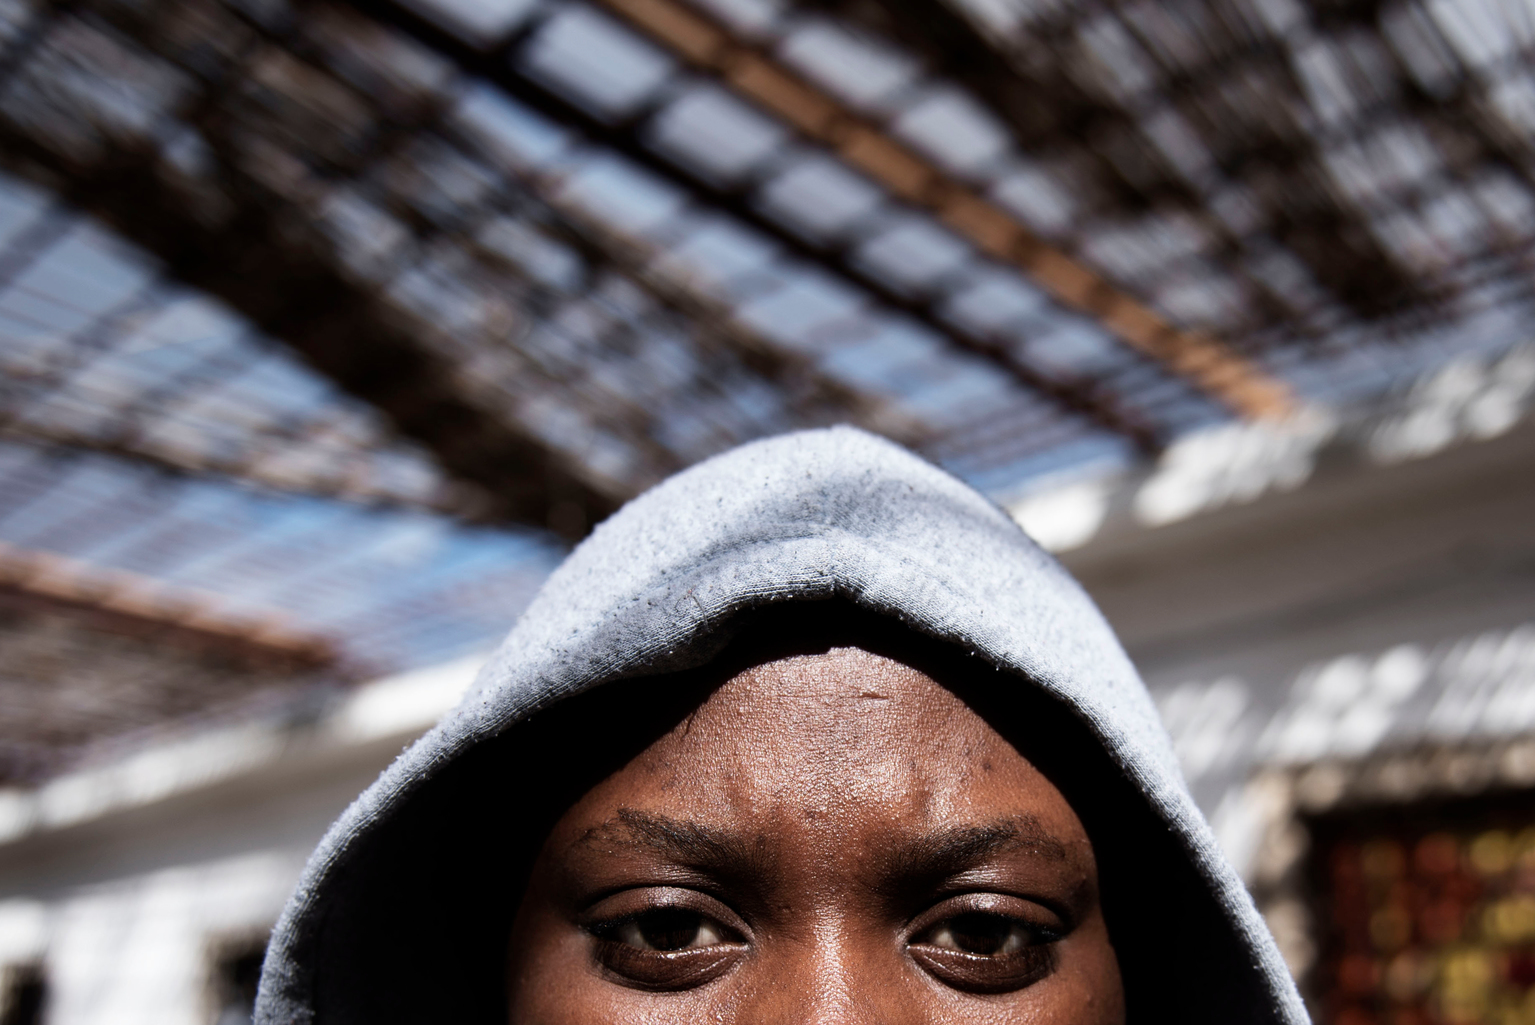 Pati*, 16, a migrant from Nigeria, stands in the courtyard at a detention centre.